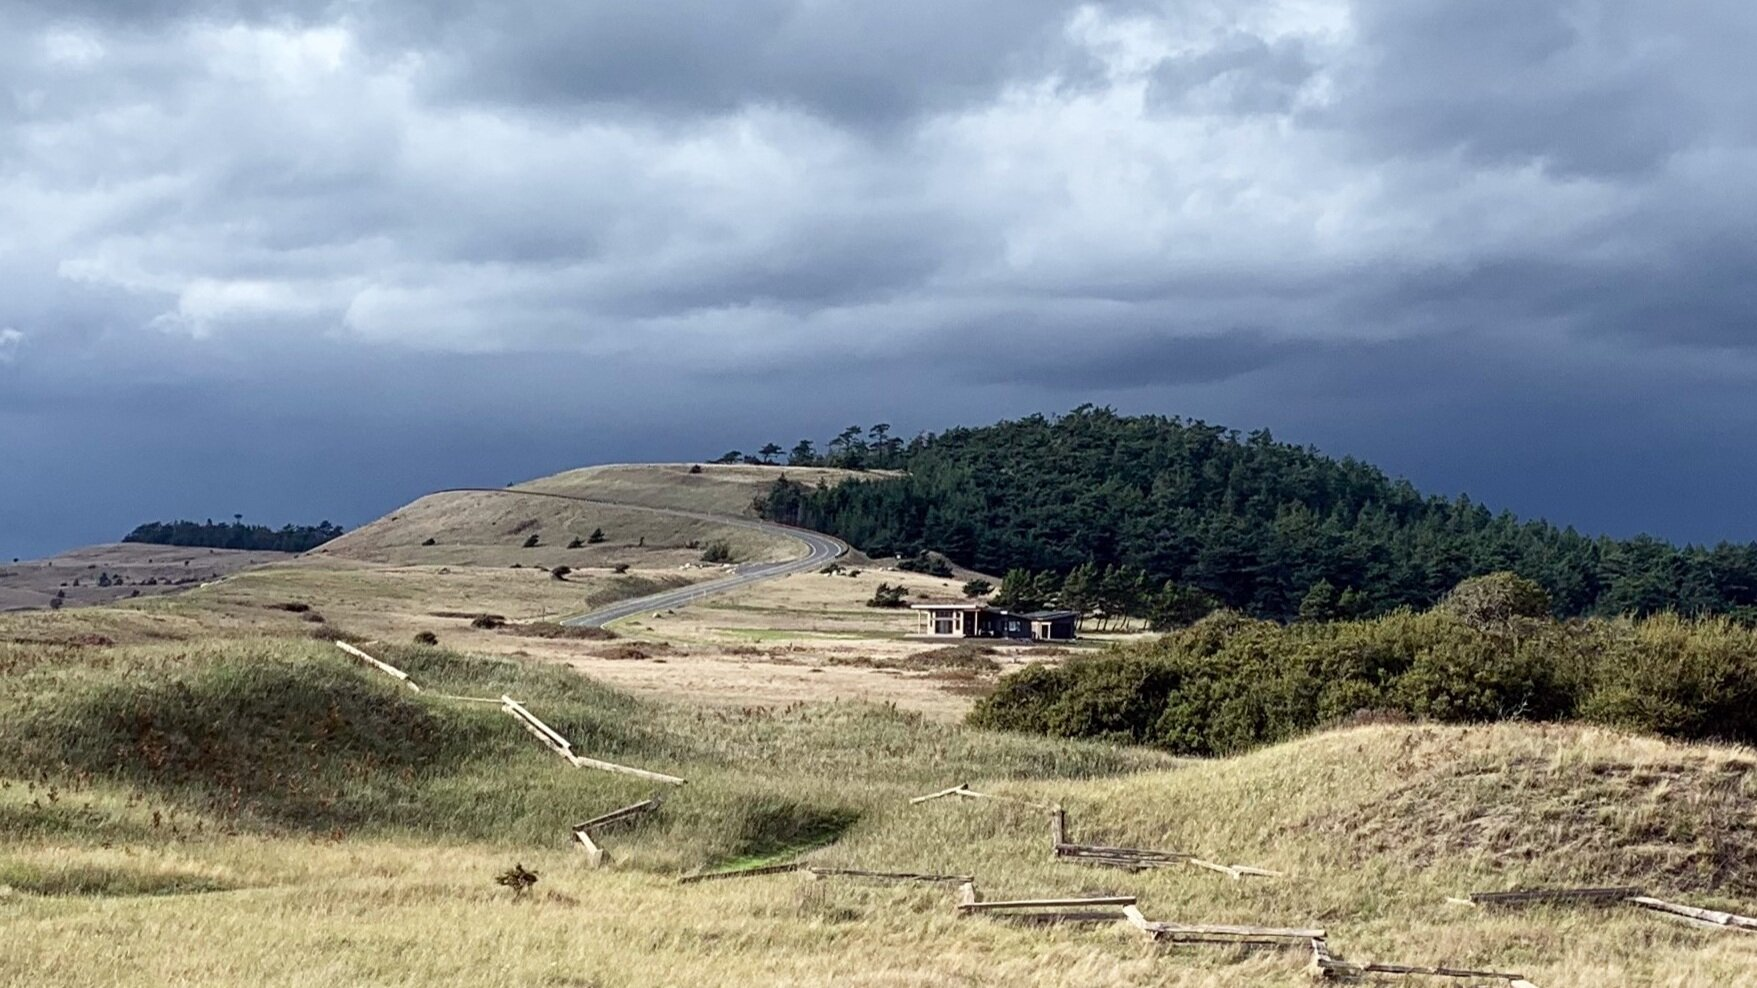 House in the Landscape - Cropped More.jpg